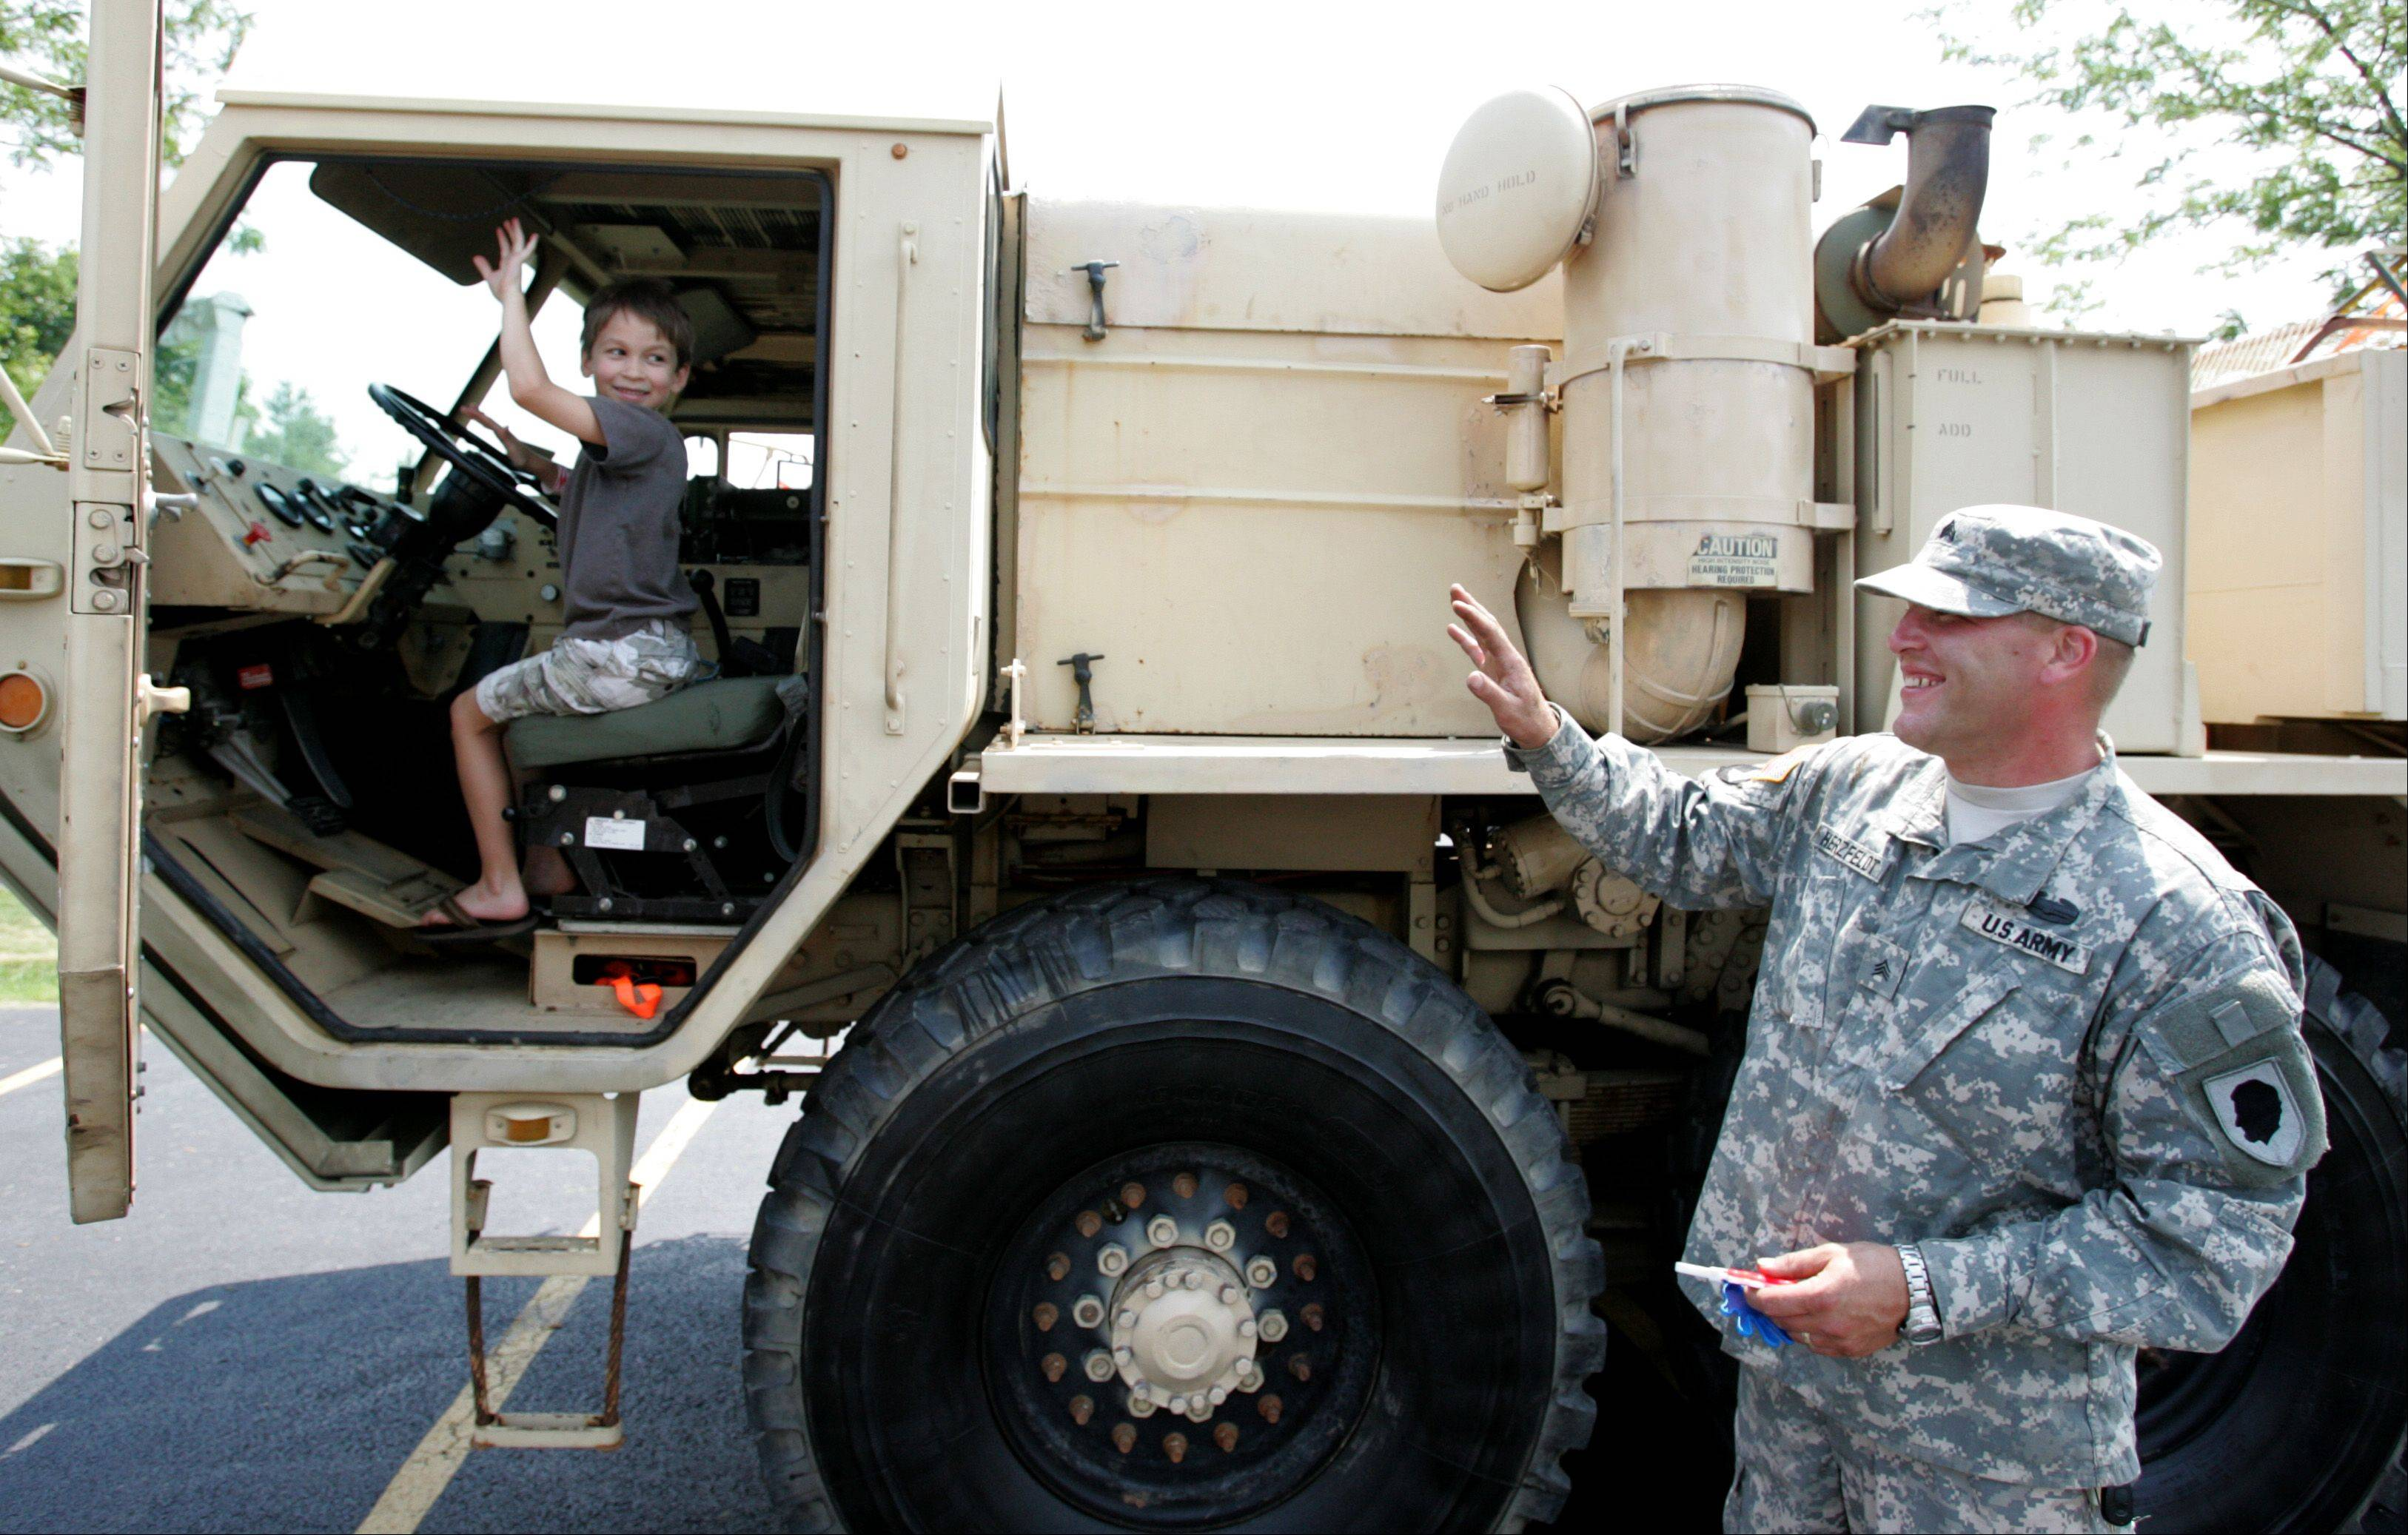 A young driver tests out the horn of a Hemmet Wrecker from the 3625th Maintenance Company of the Illinois National Guard during a previous edition of Big Trucks, sponsored by the Barrington Park District, held at Ron Beese Park.